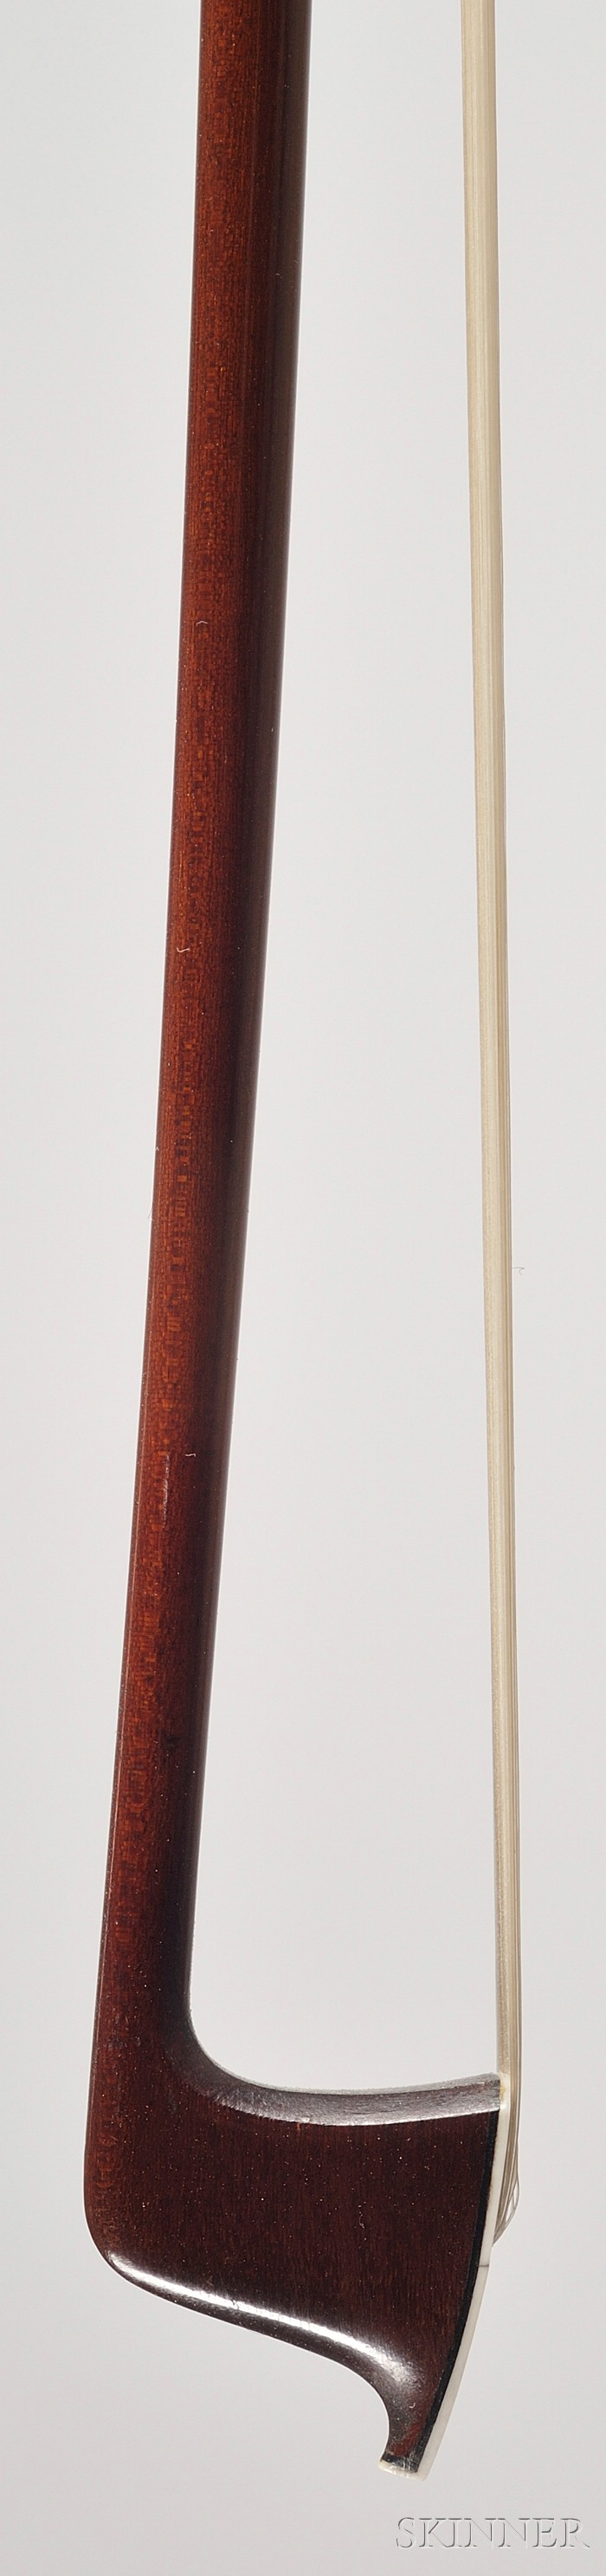 Silver Mounted Violin Bow